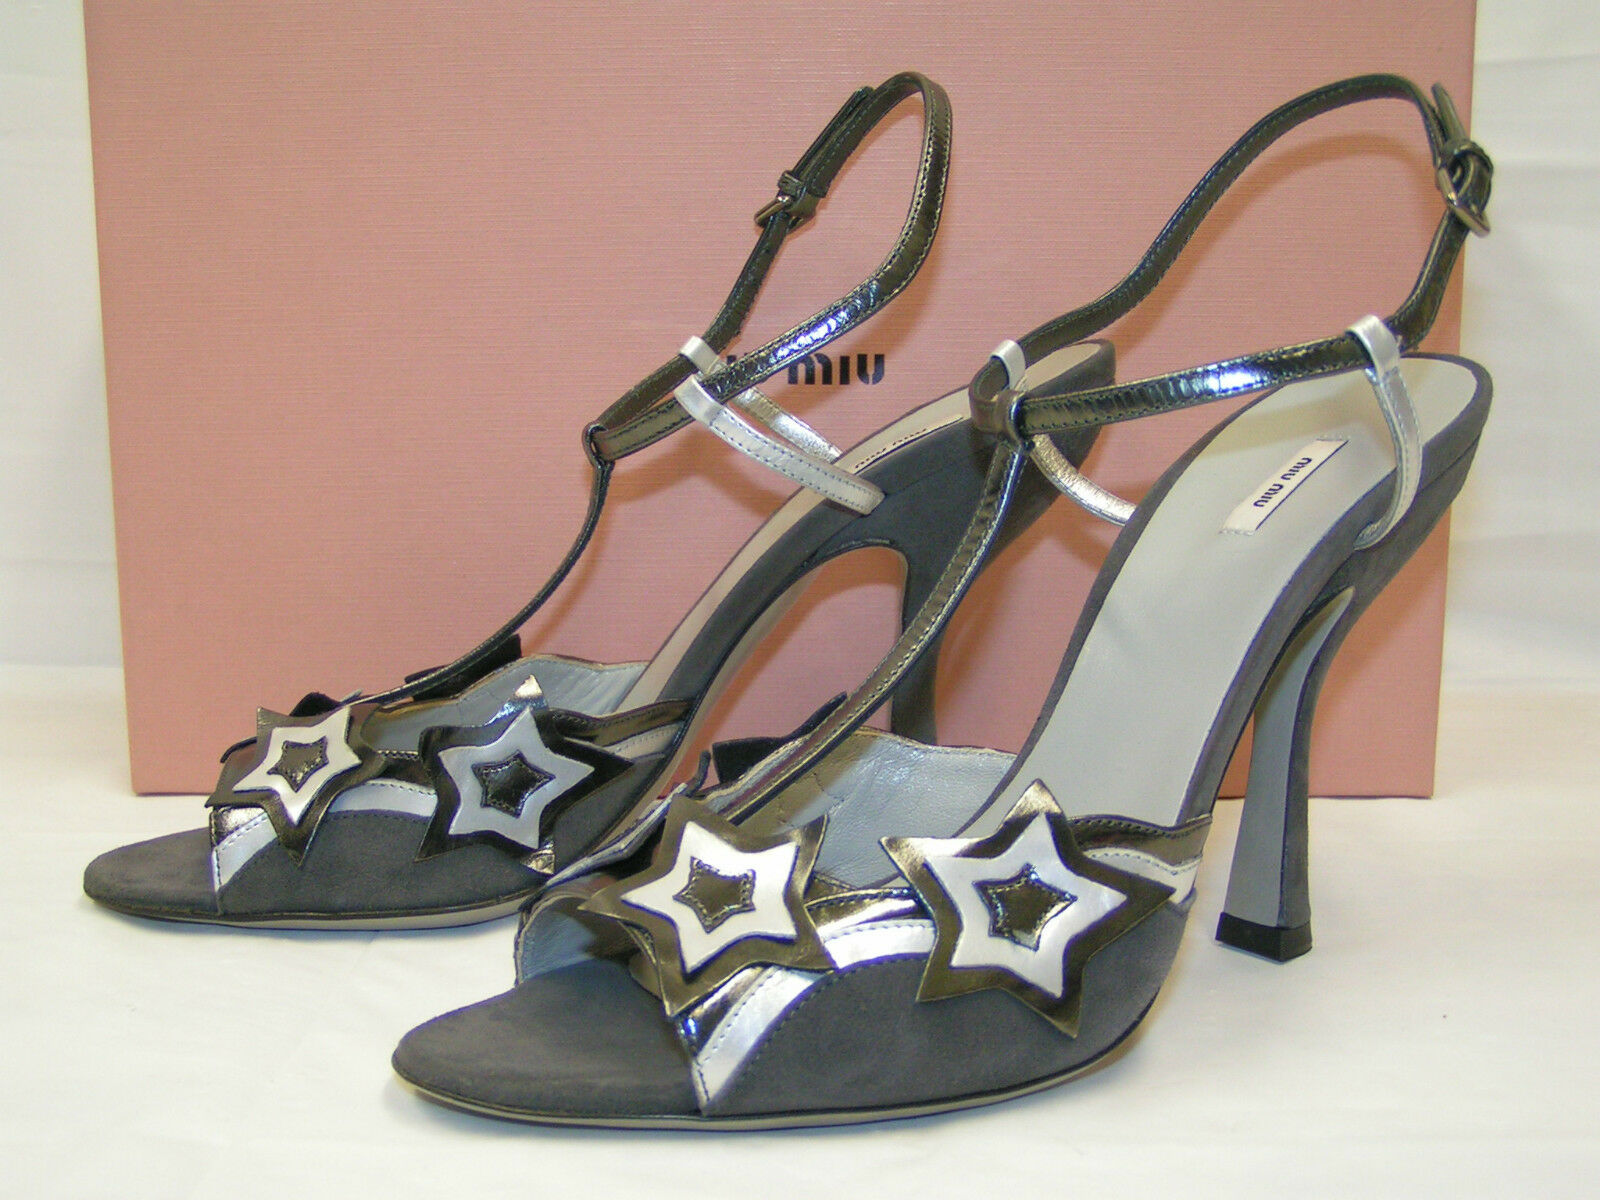 NIB MIU MIU PRADA LEATHER SUEDE MORNING STARS TWO TONE PUMPS SANDALS 39 8.5  495